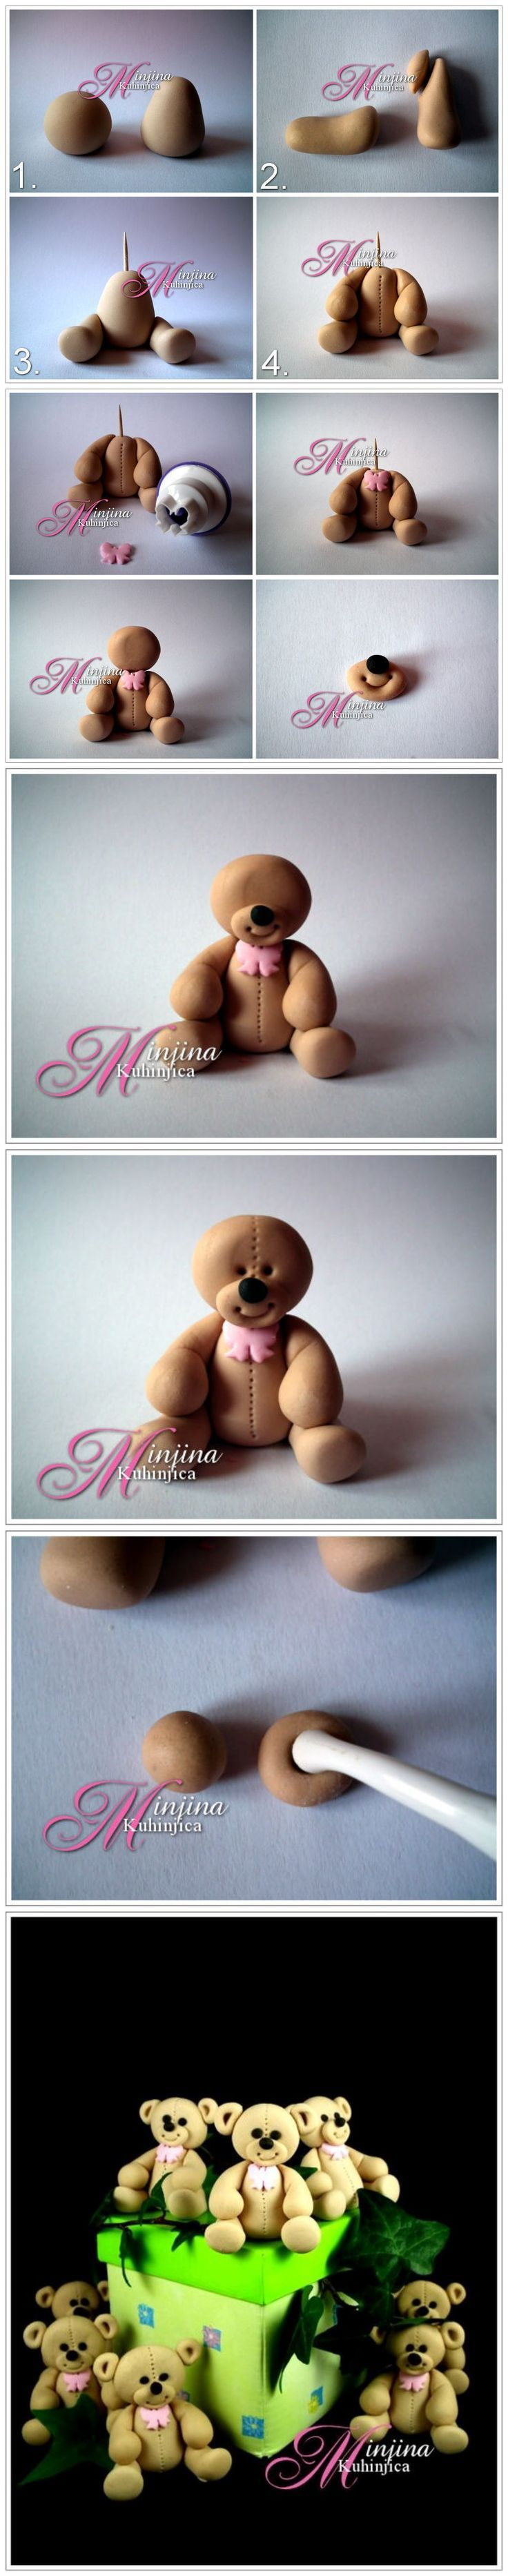 How to make a teddy bear out of fondant, modeling chocolate, or clay